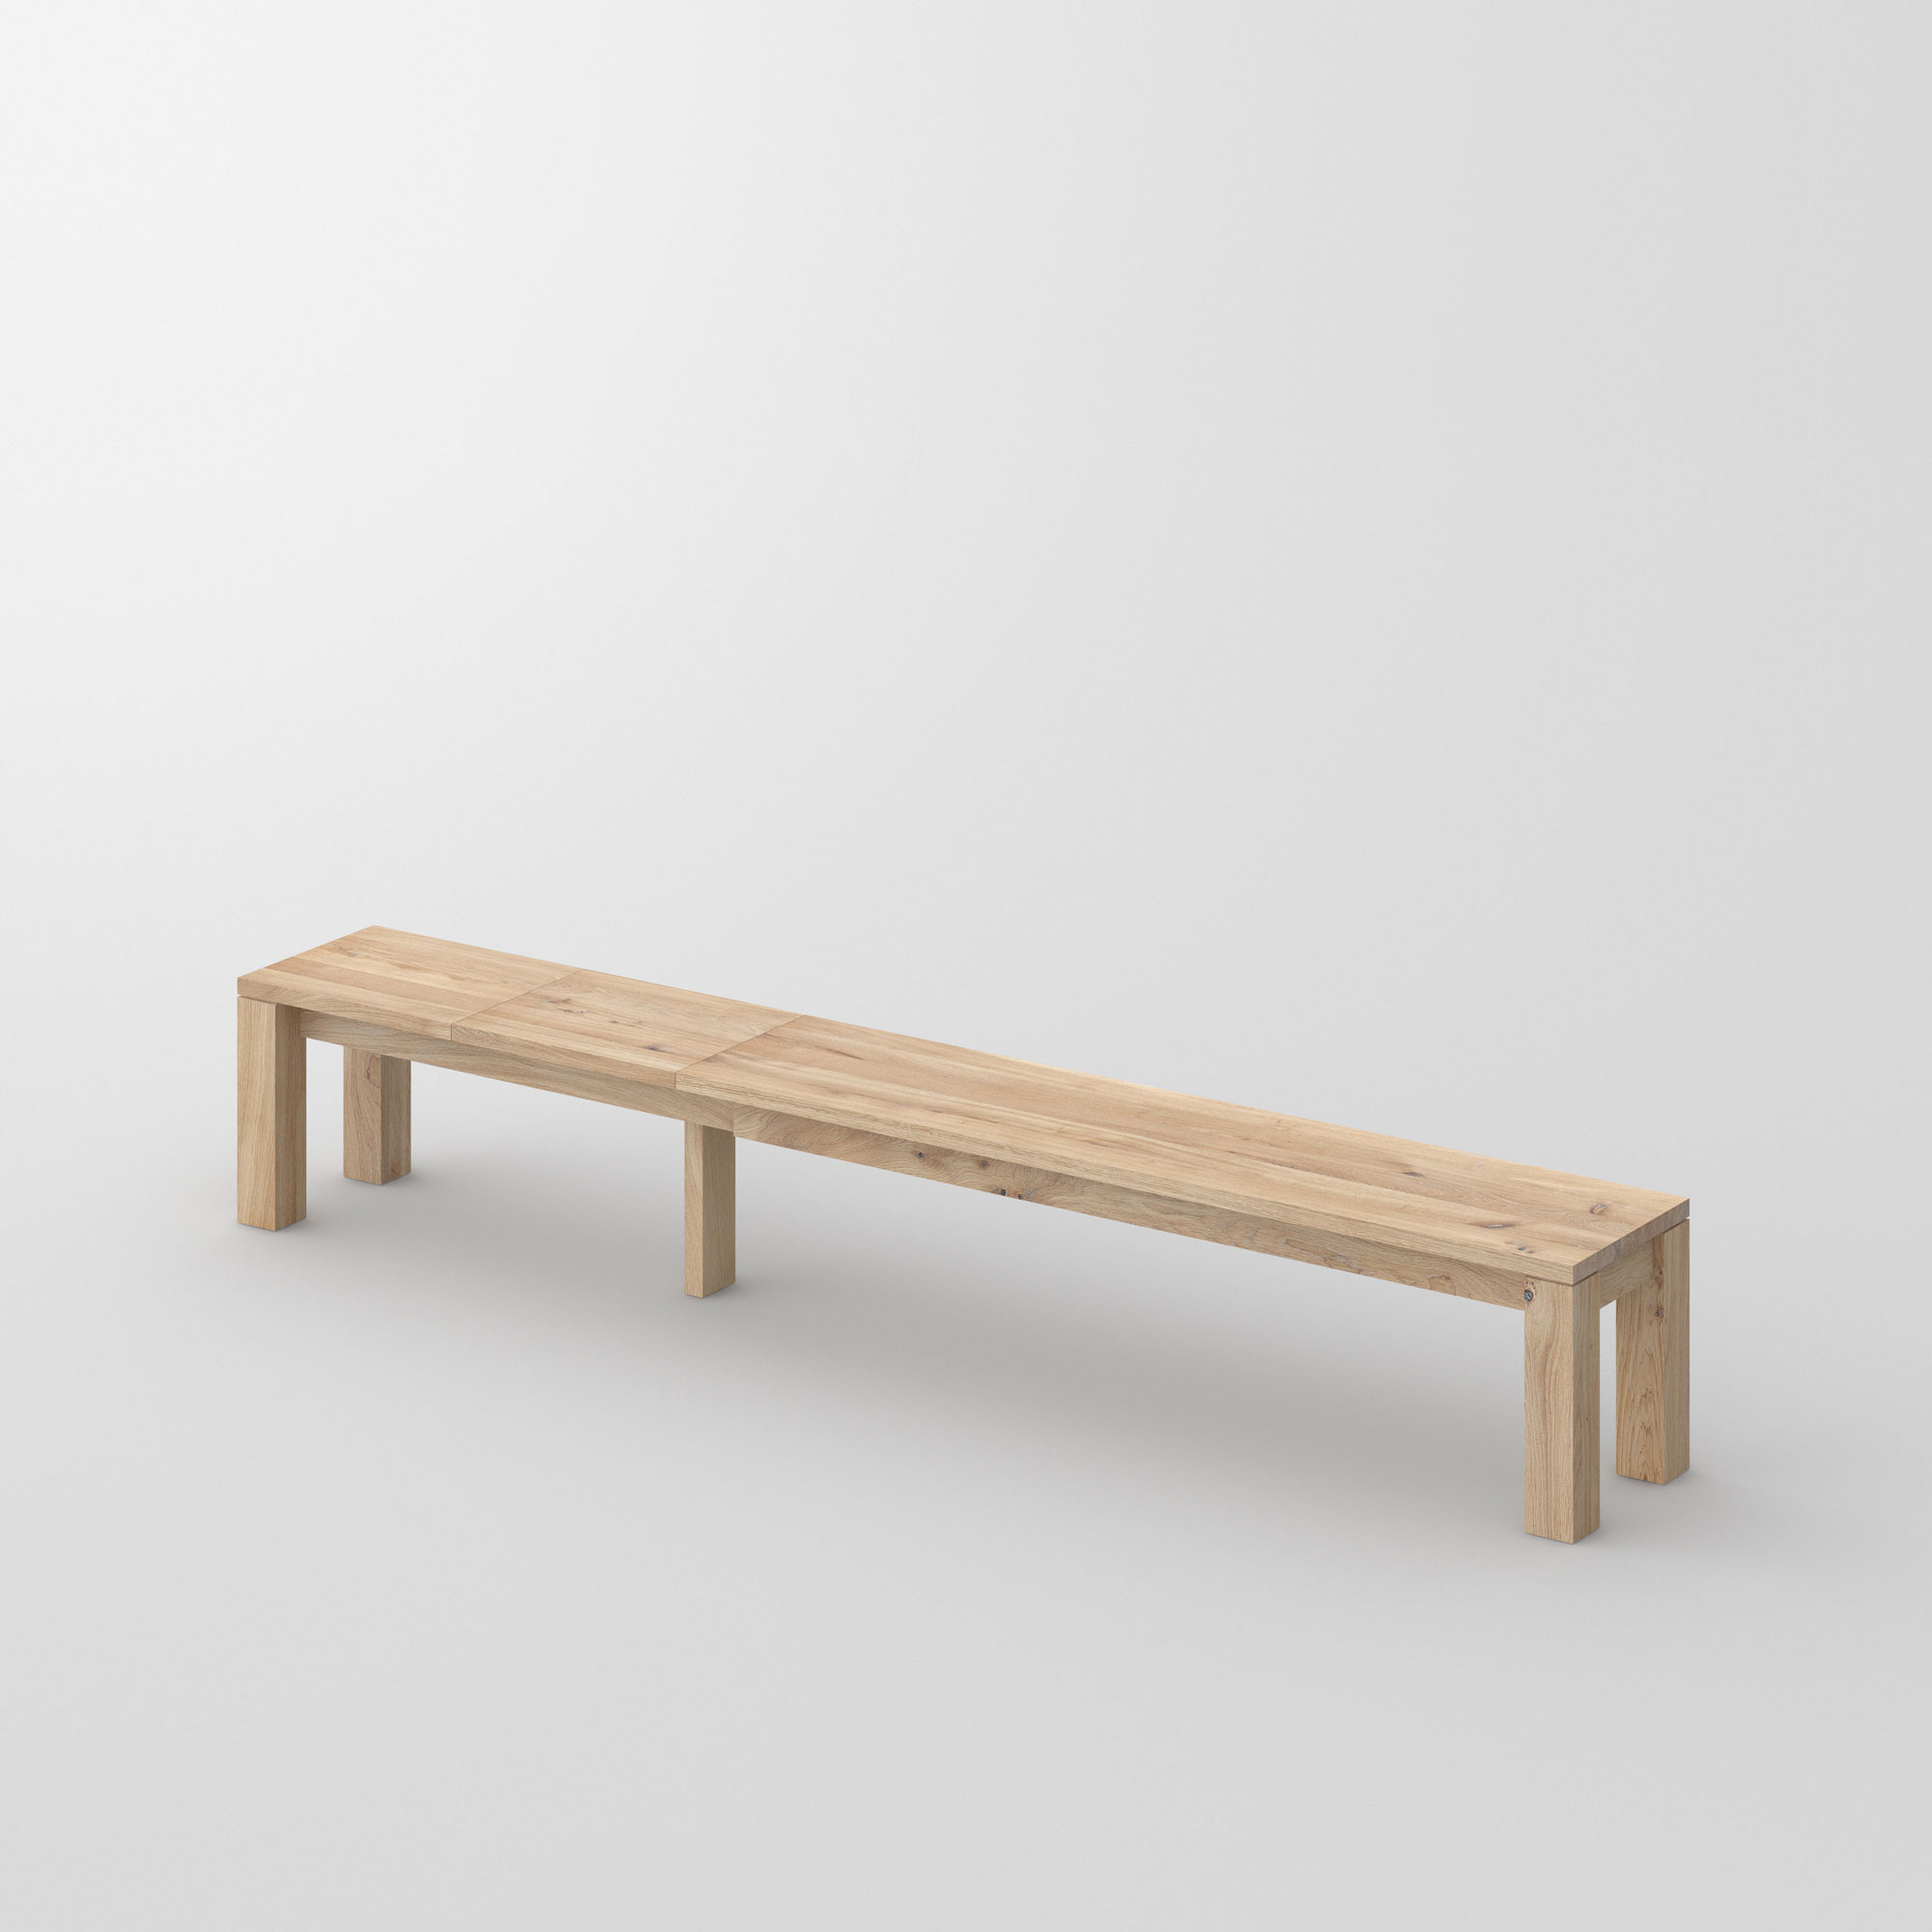 Pull-out Wood Bench LIVING EP cam1 custom made in solid wood by vitamin design